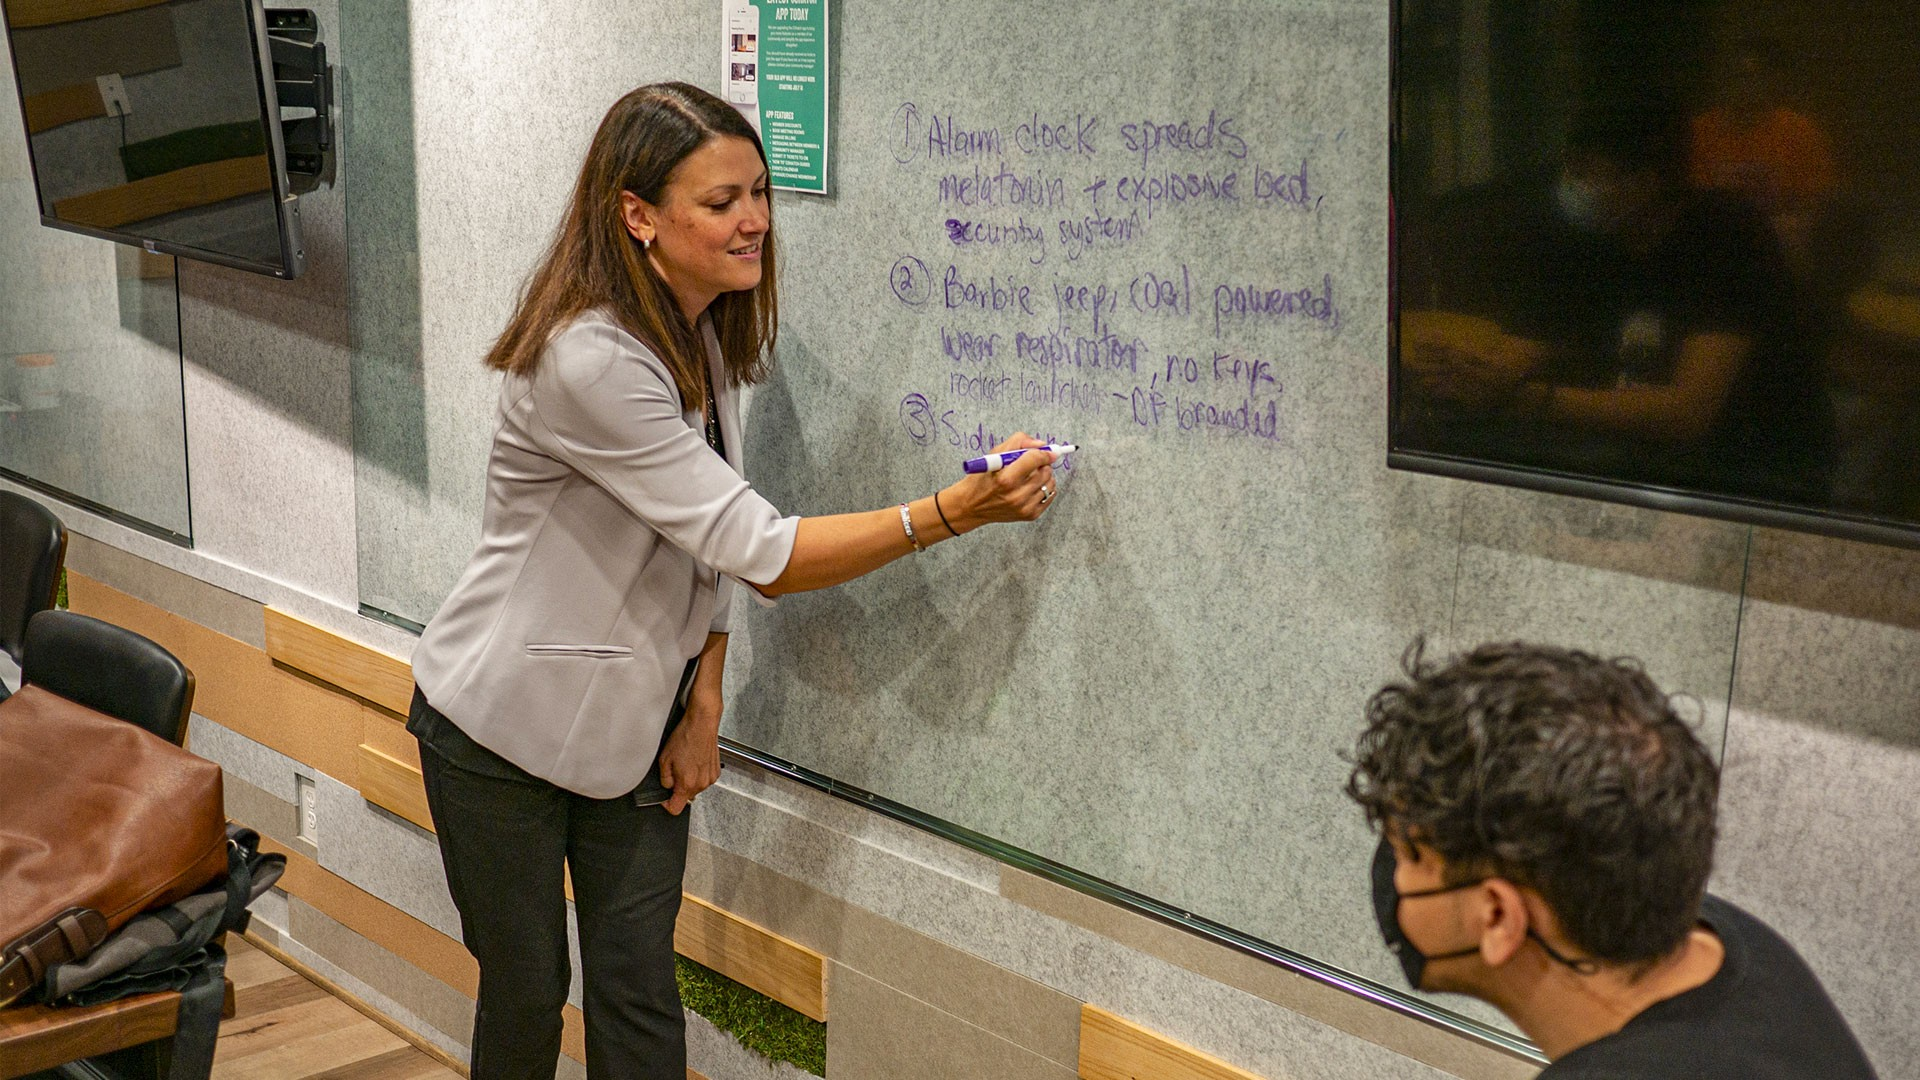 Presenter writing on a dry erase wall